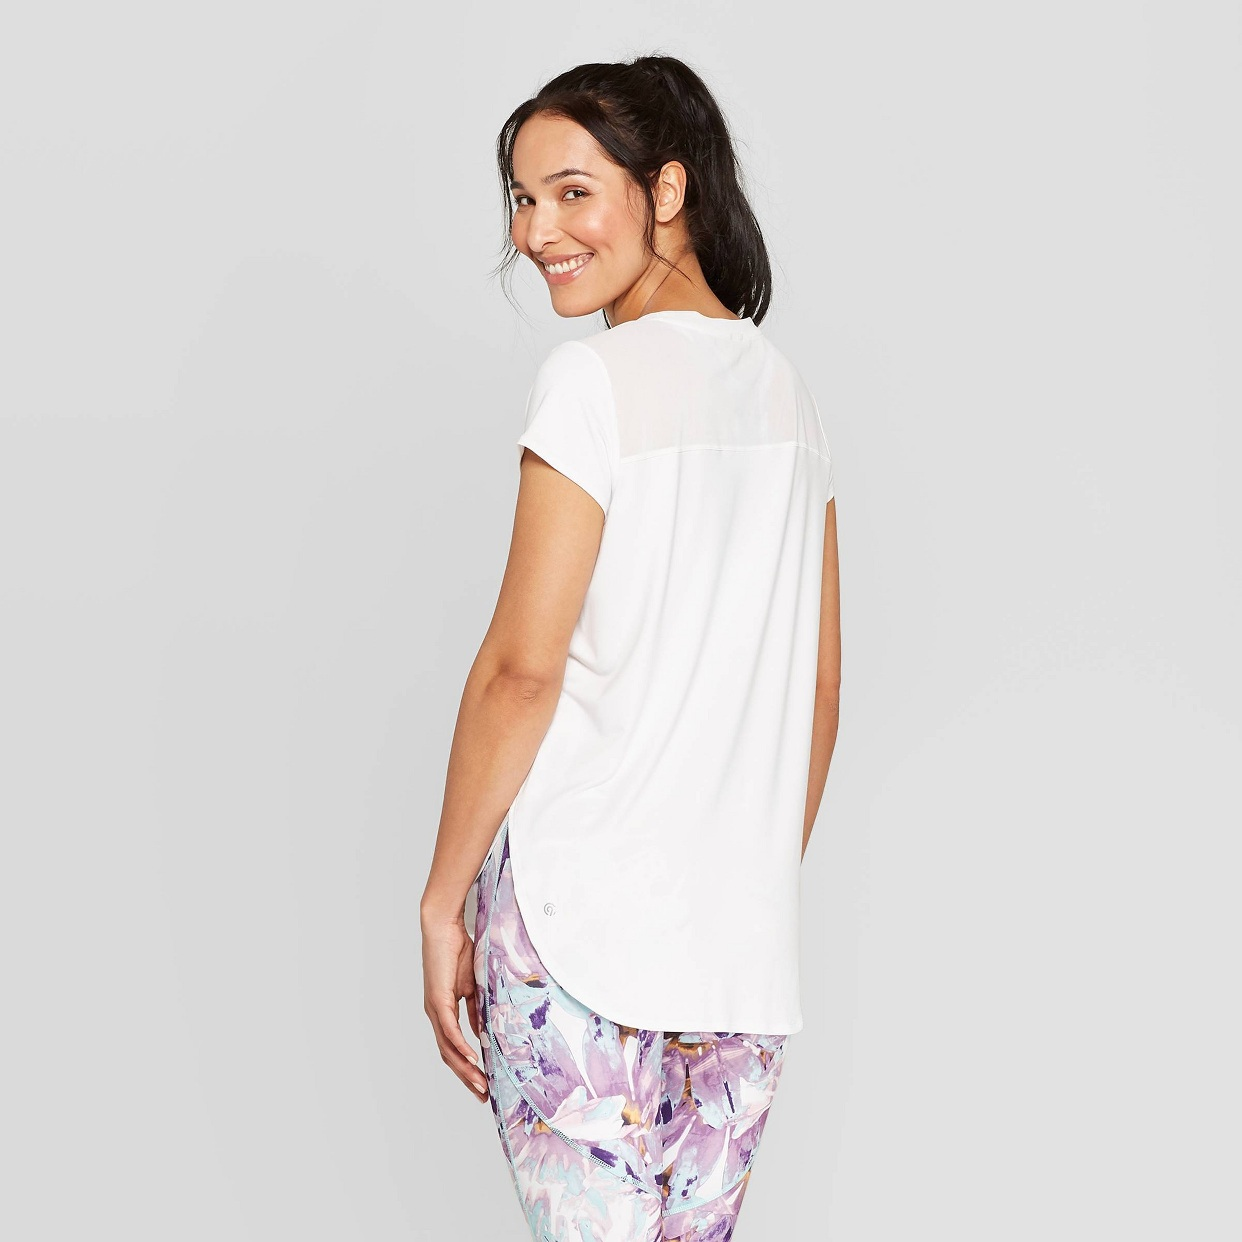 - For someone who's large chested I love this top. The longer hem is an added bonus. So now I just need to start working out. Hah.Find it here.